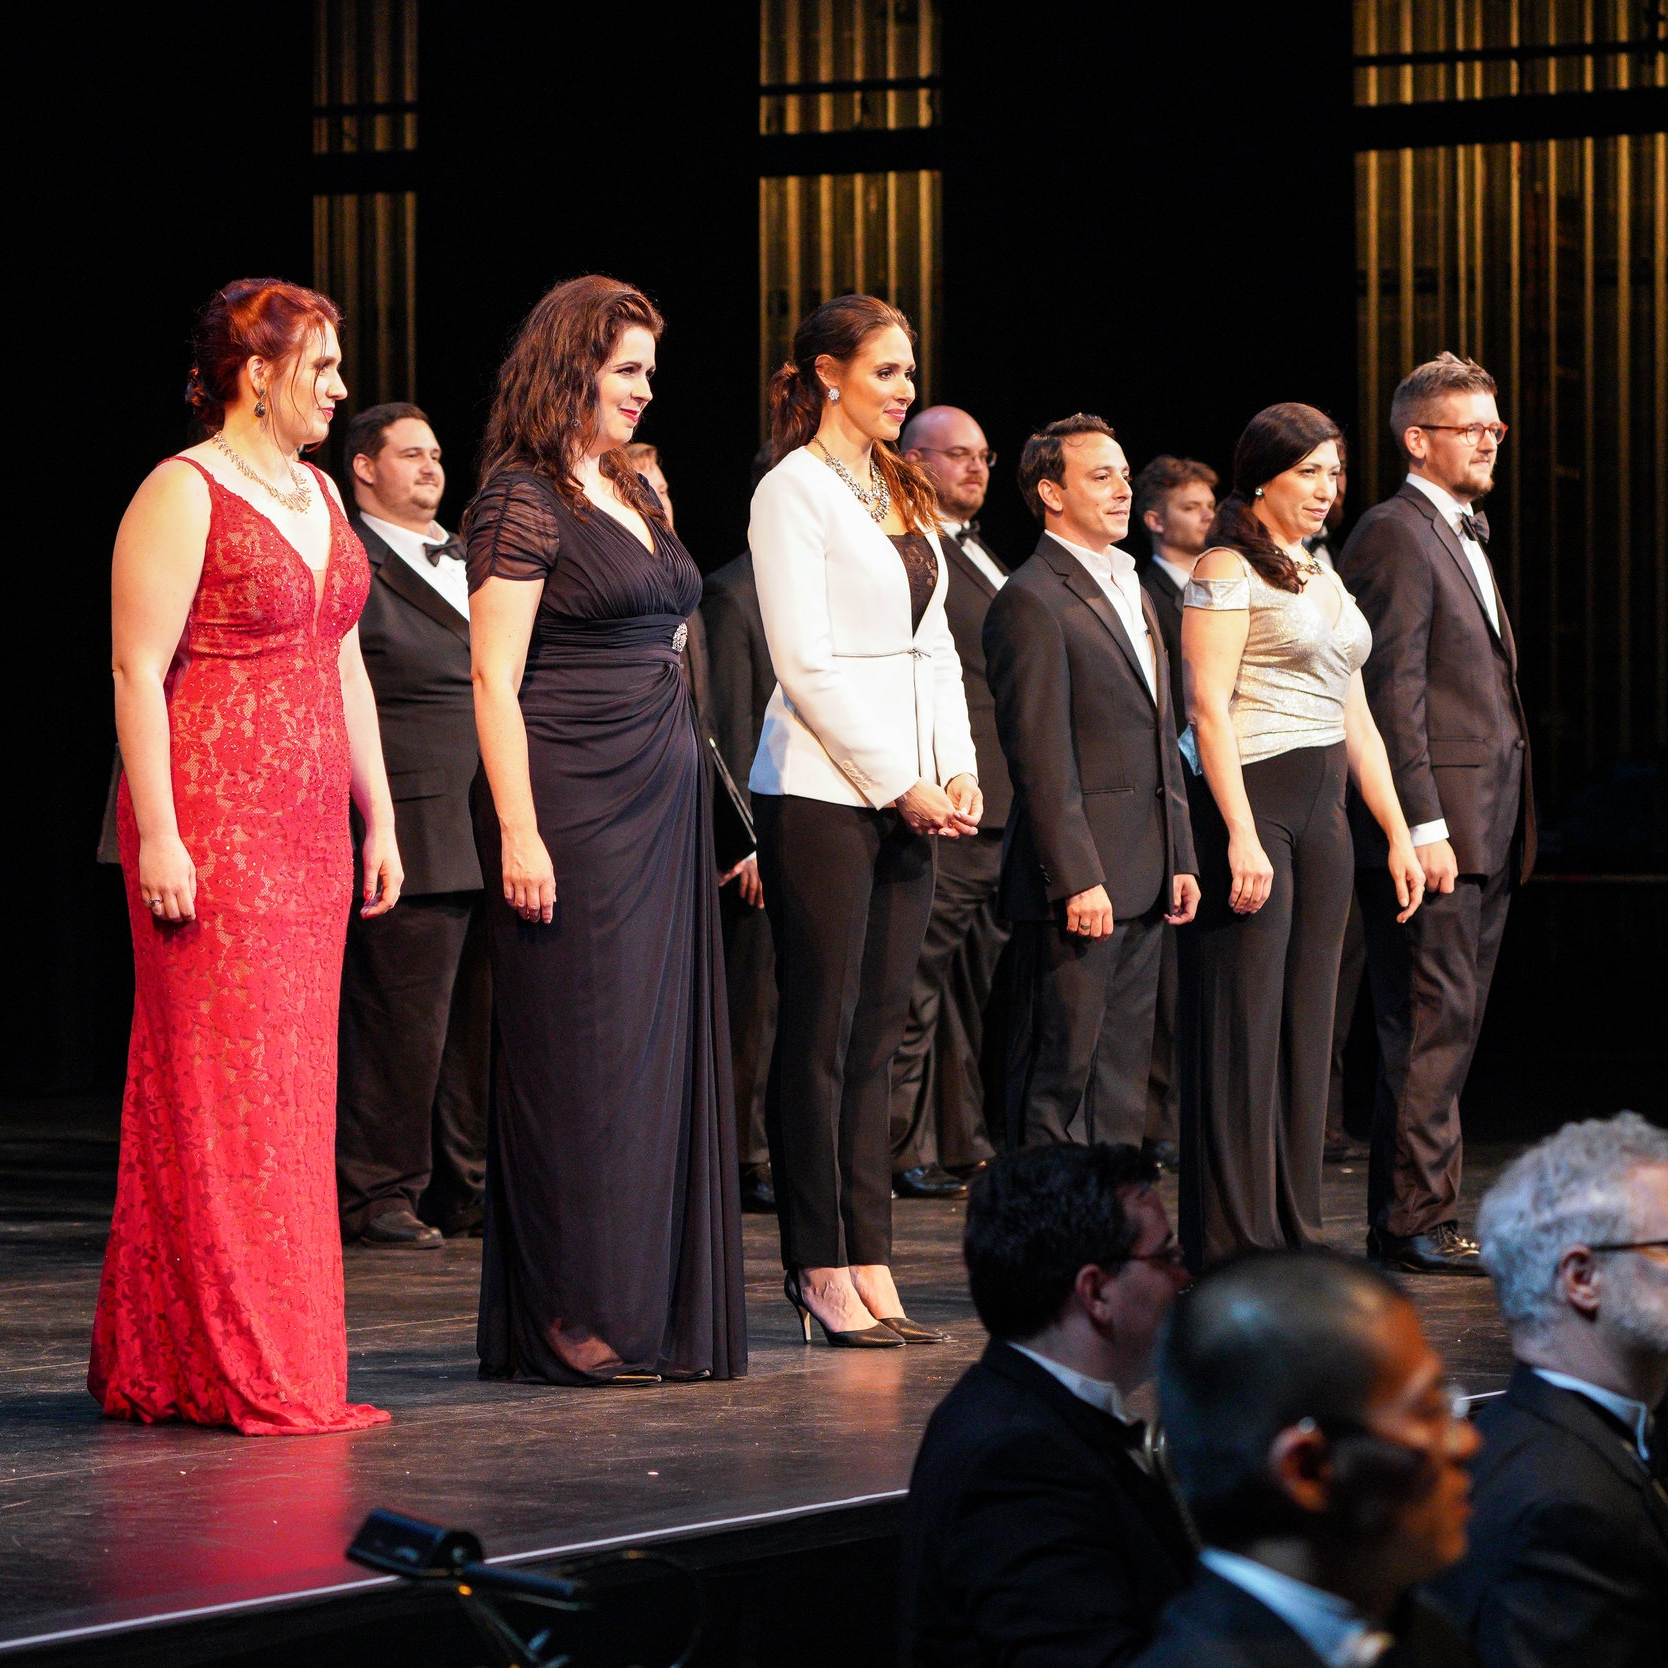 The Classical Review: Crutchfield's Teatro Nuovo begins life with a pair of bel canto rarities - July 30, 2018